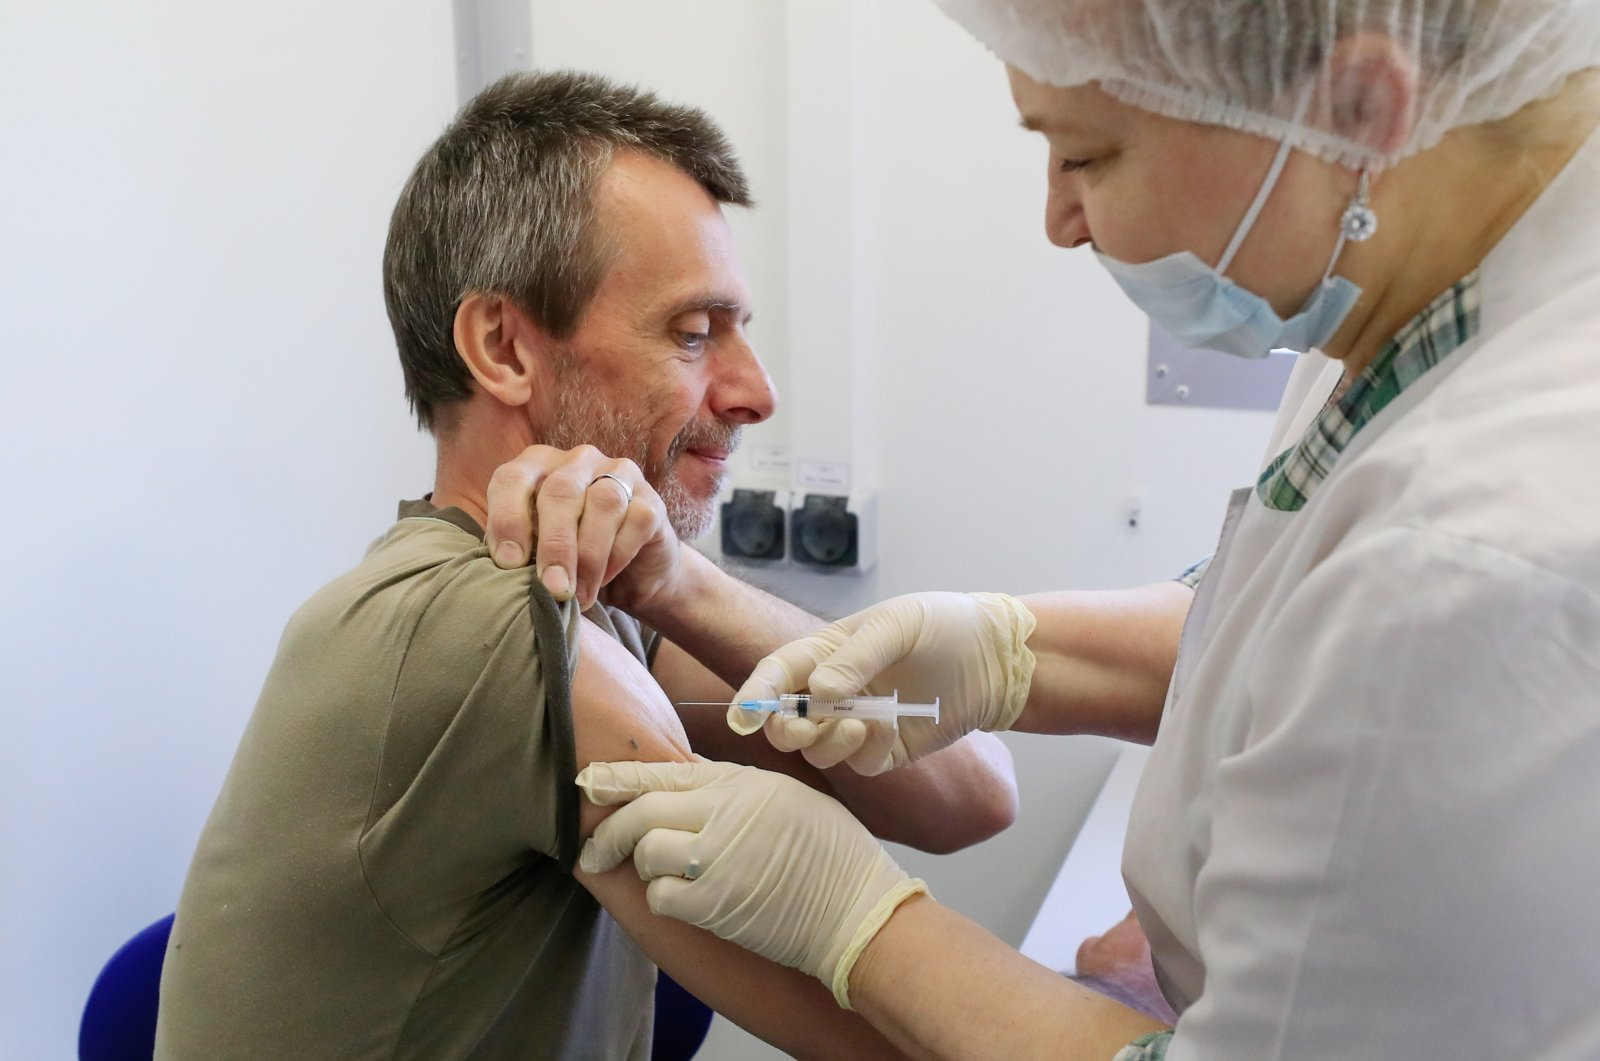 A man receives a dose of Sputnik V vaccine against the coronavirus at a mobile vaccination center in a dacha community near the village of Poyarkovo in Moscow Region, Russia, May 31, 2021. (Reuters Photo)